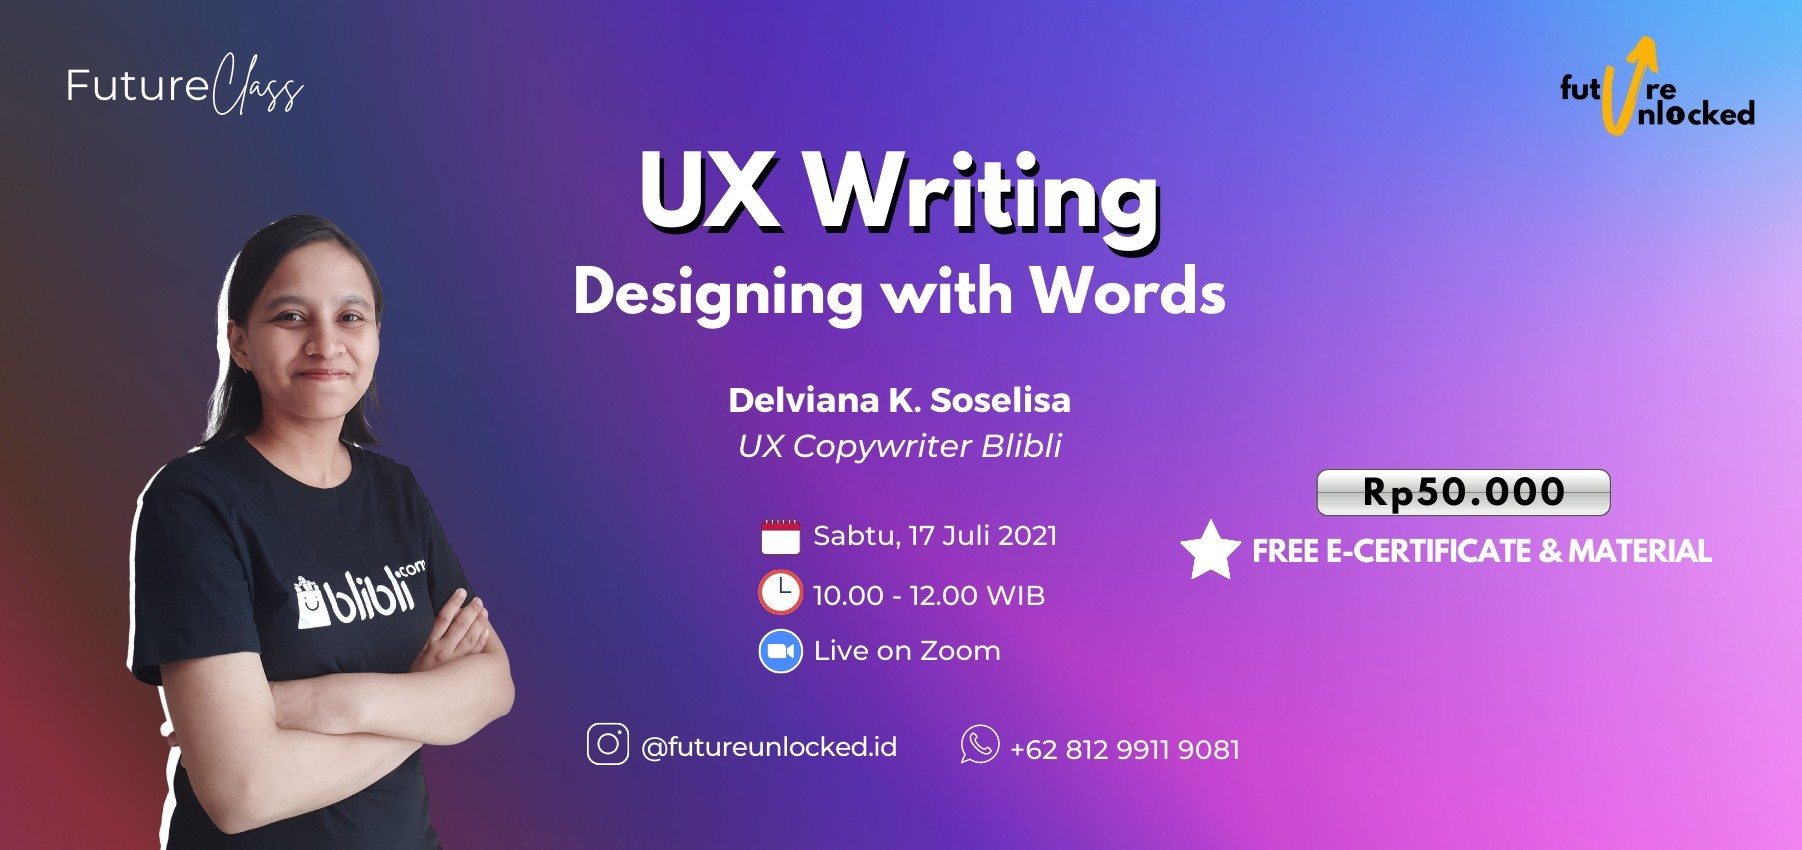 #FUTURECLASS: UX WRITING - Designing with Words